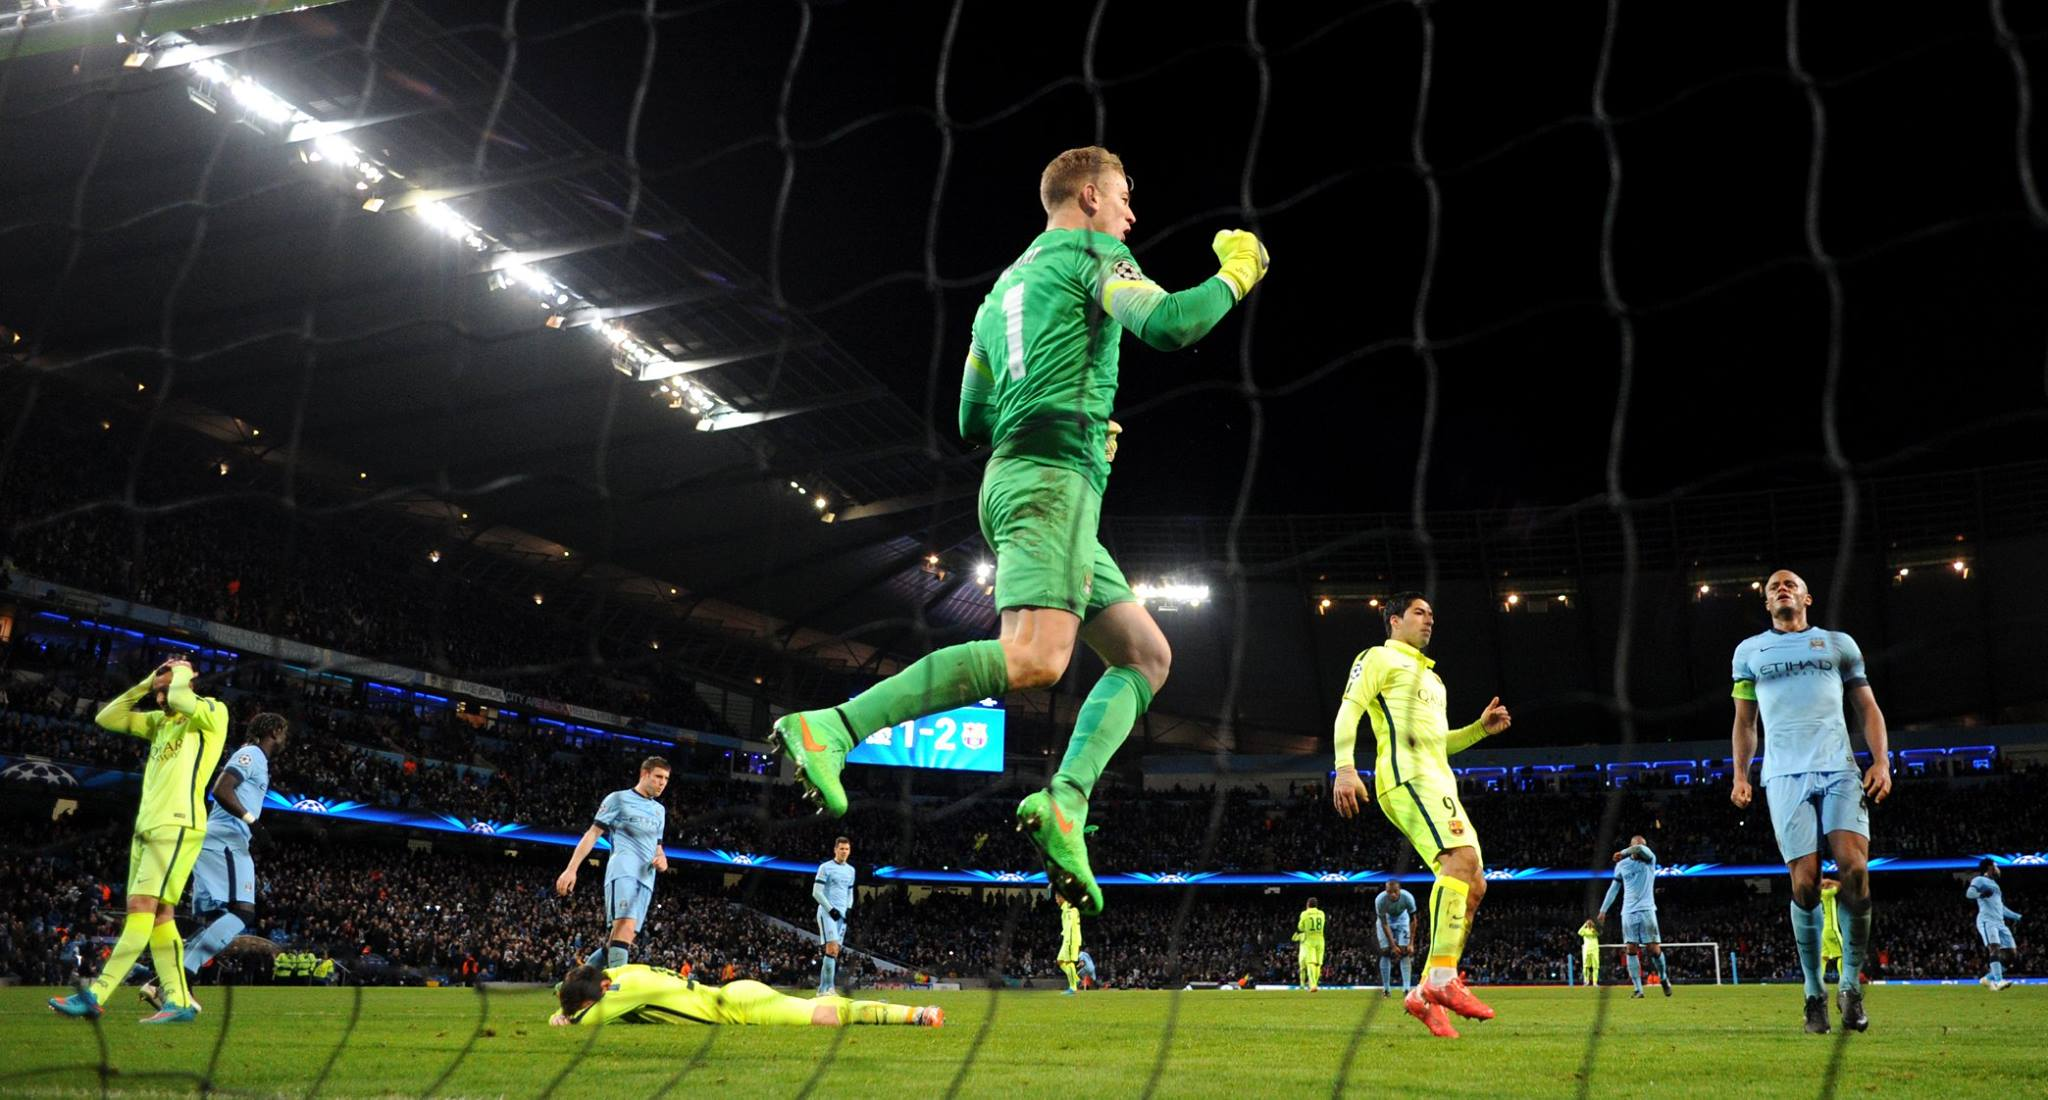 Jumping Joe - Hart frustrated Lionel Messi in City 's Champions League encounters with Barcelona - saving a penalty at the Etihad before putting on a world class show at the Nou Camp. Courtesy@MCFC